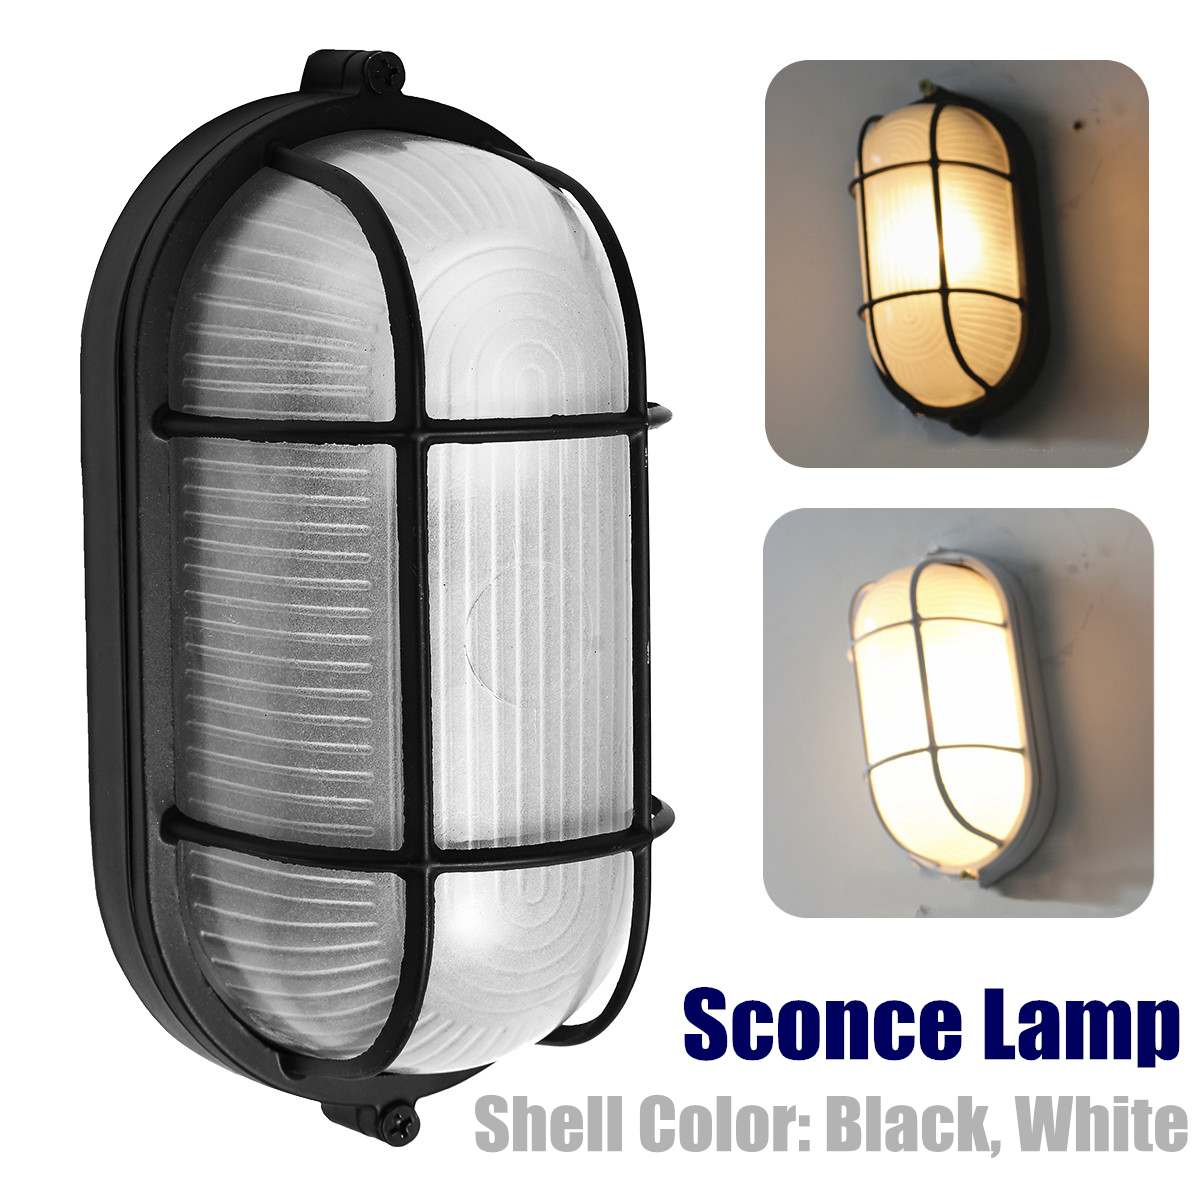 Fixture Indoor Vintage Garden Wall Light Sconce Lamp Bedroom Porch Night Light Decoration Outdoor Lighting Black/White E27